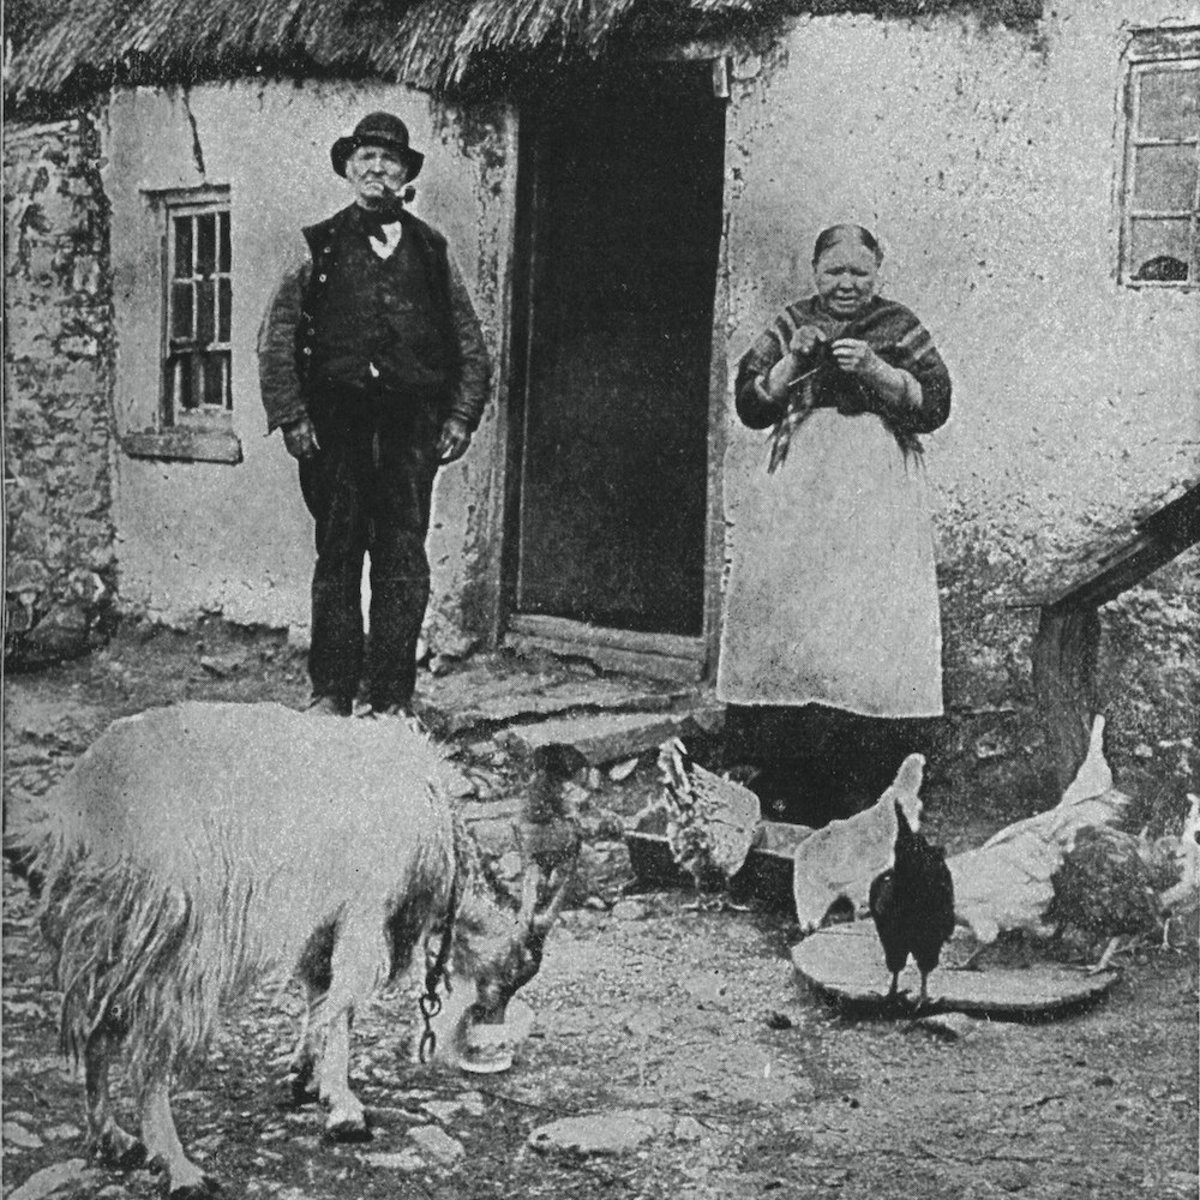 The Irish struggle has been a long one.